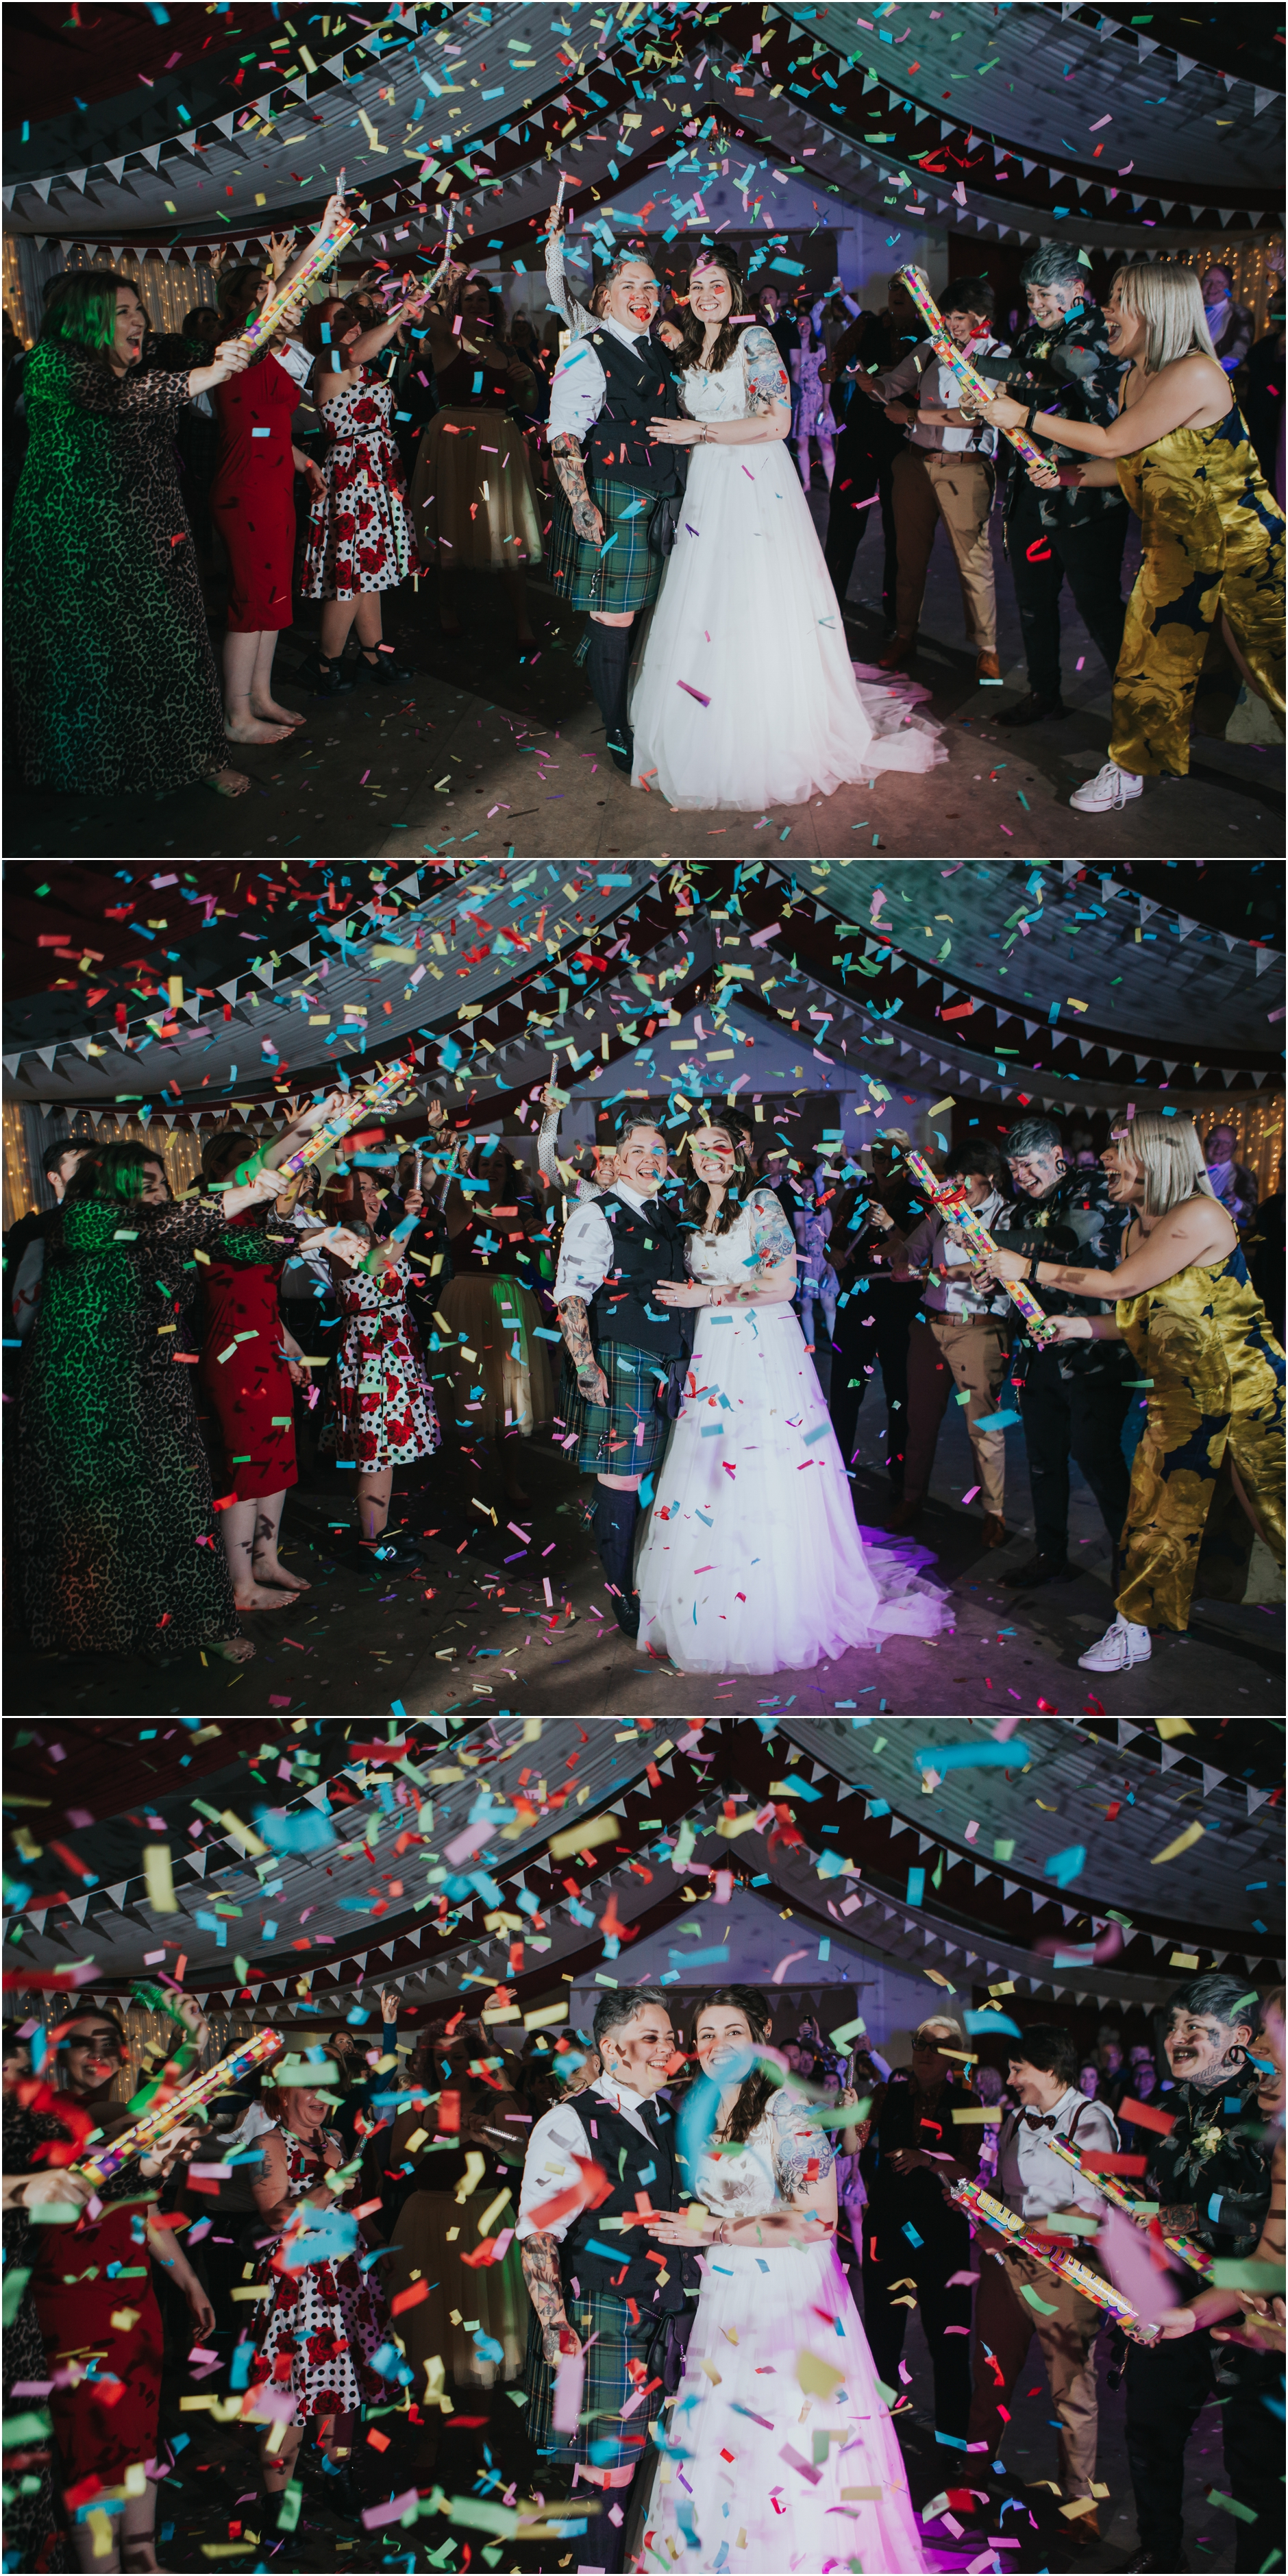 same sex wedding photographer scotland confetti over the couple on the dance floor from confetti cannons